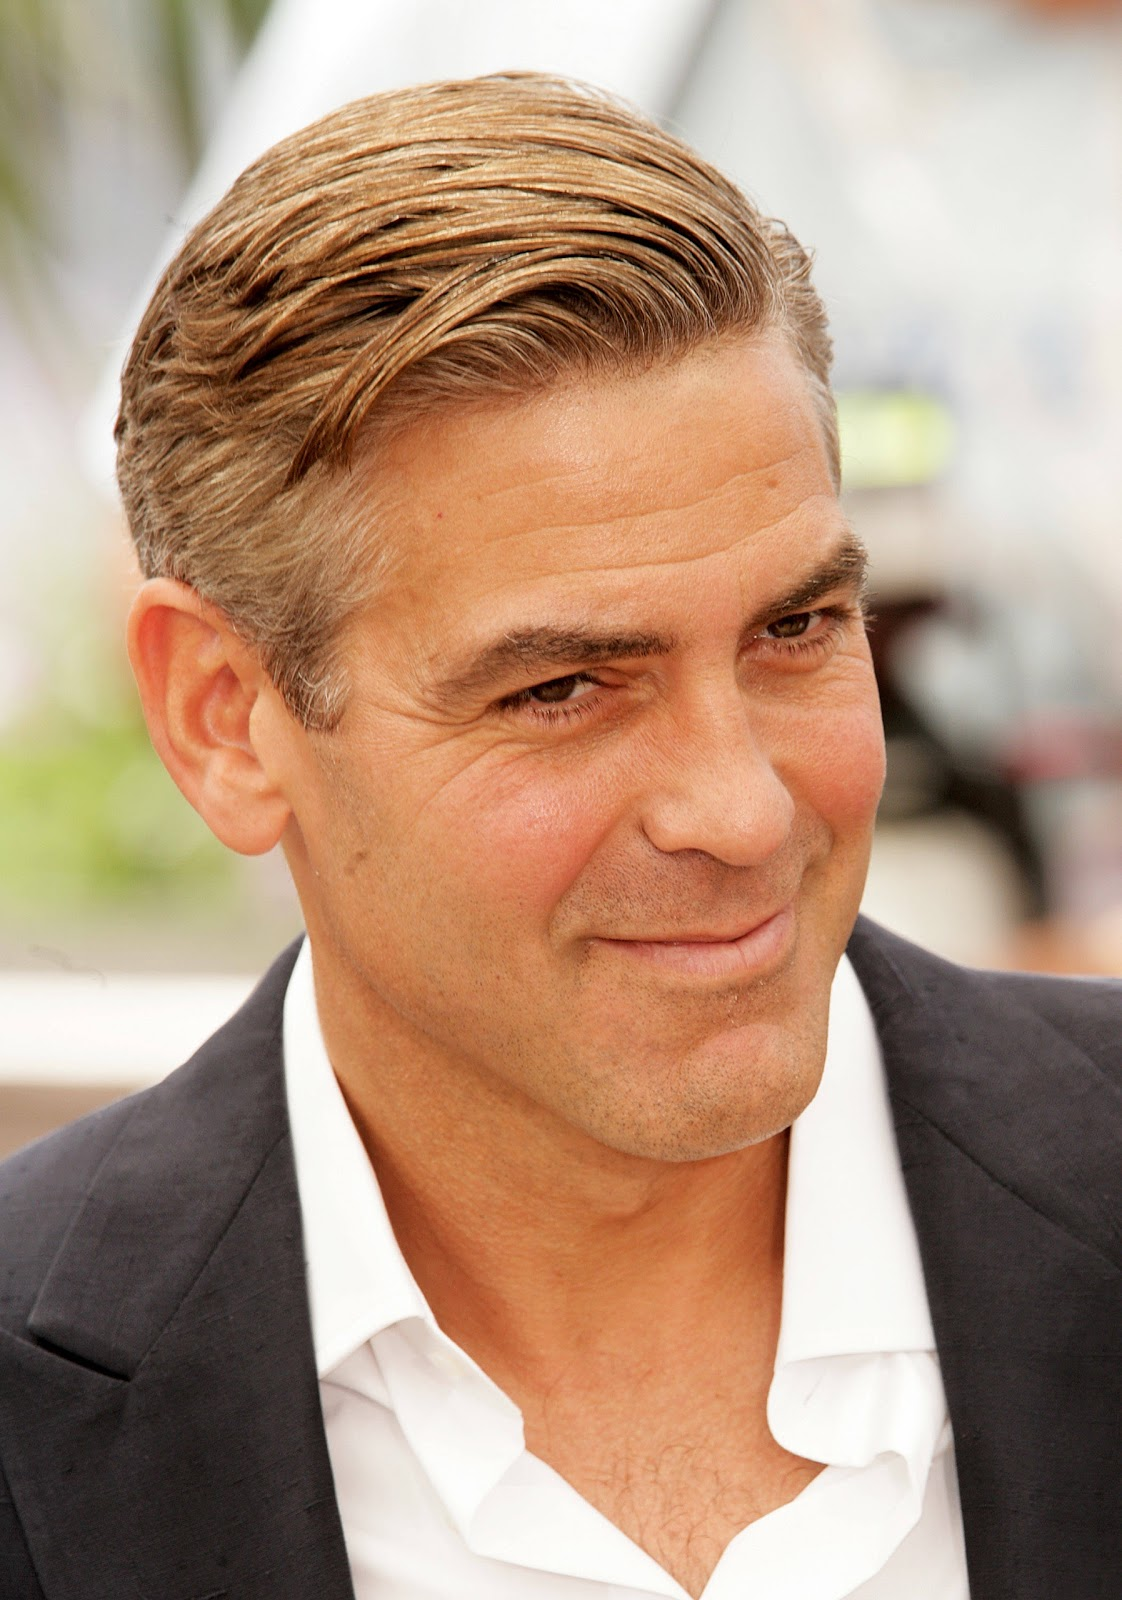 George Clooney Cool Short Hairstyle title=